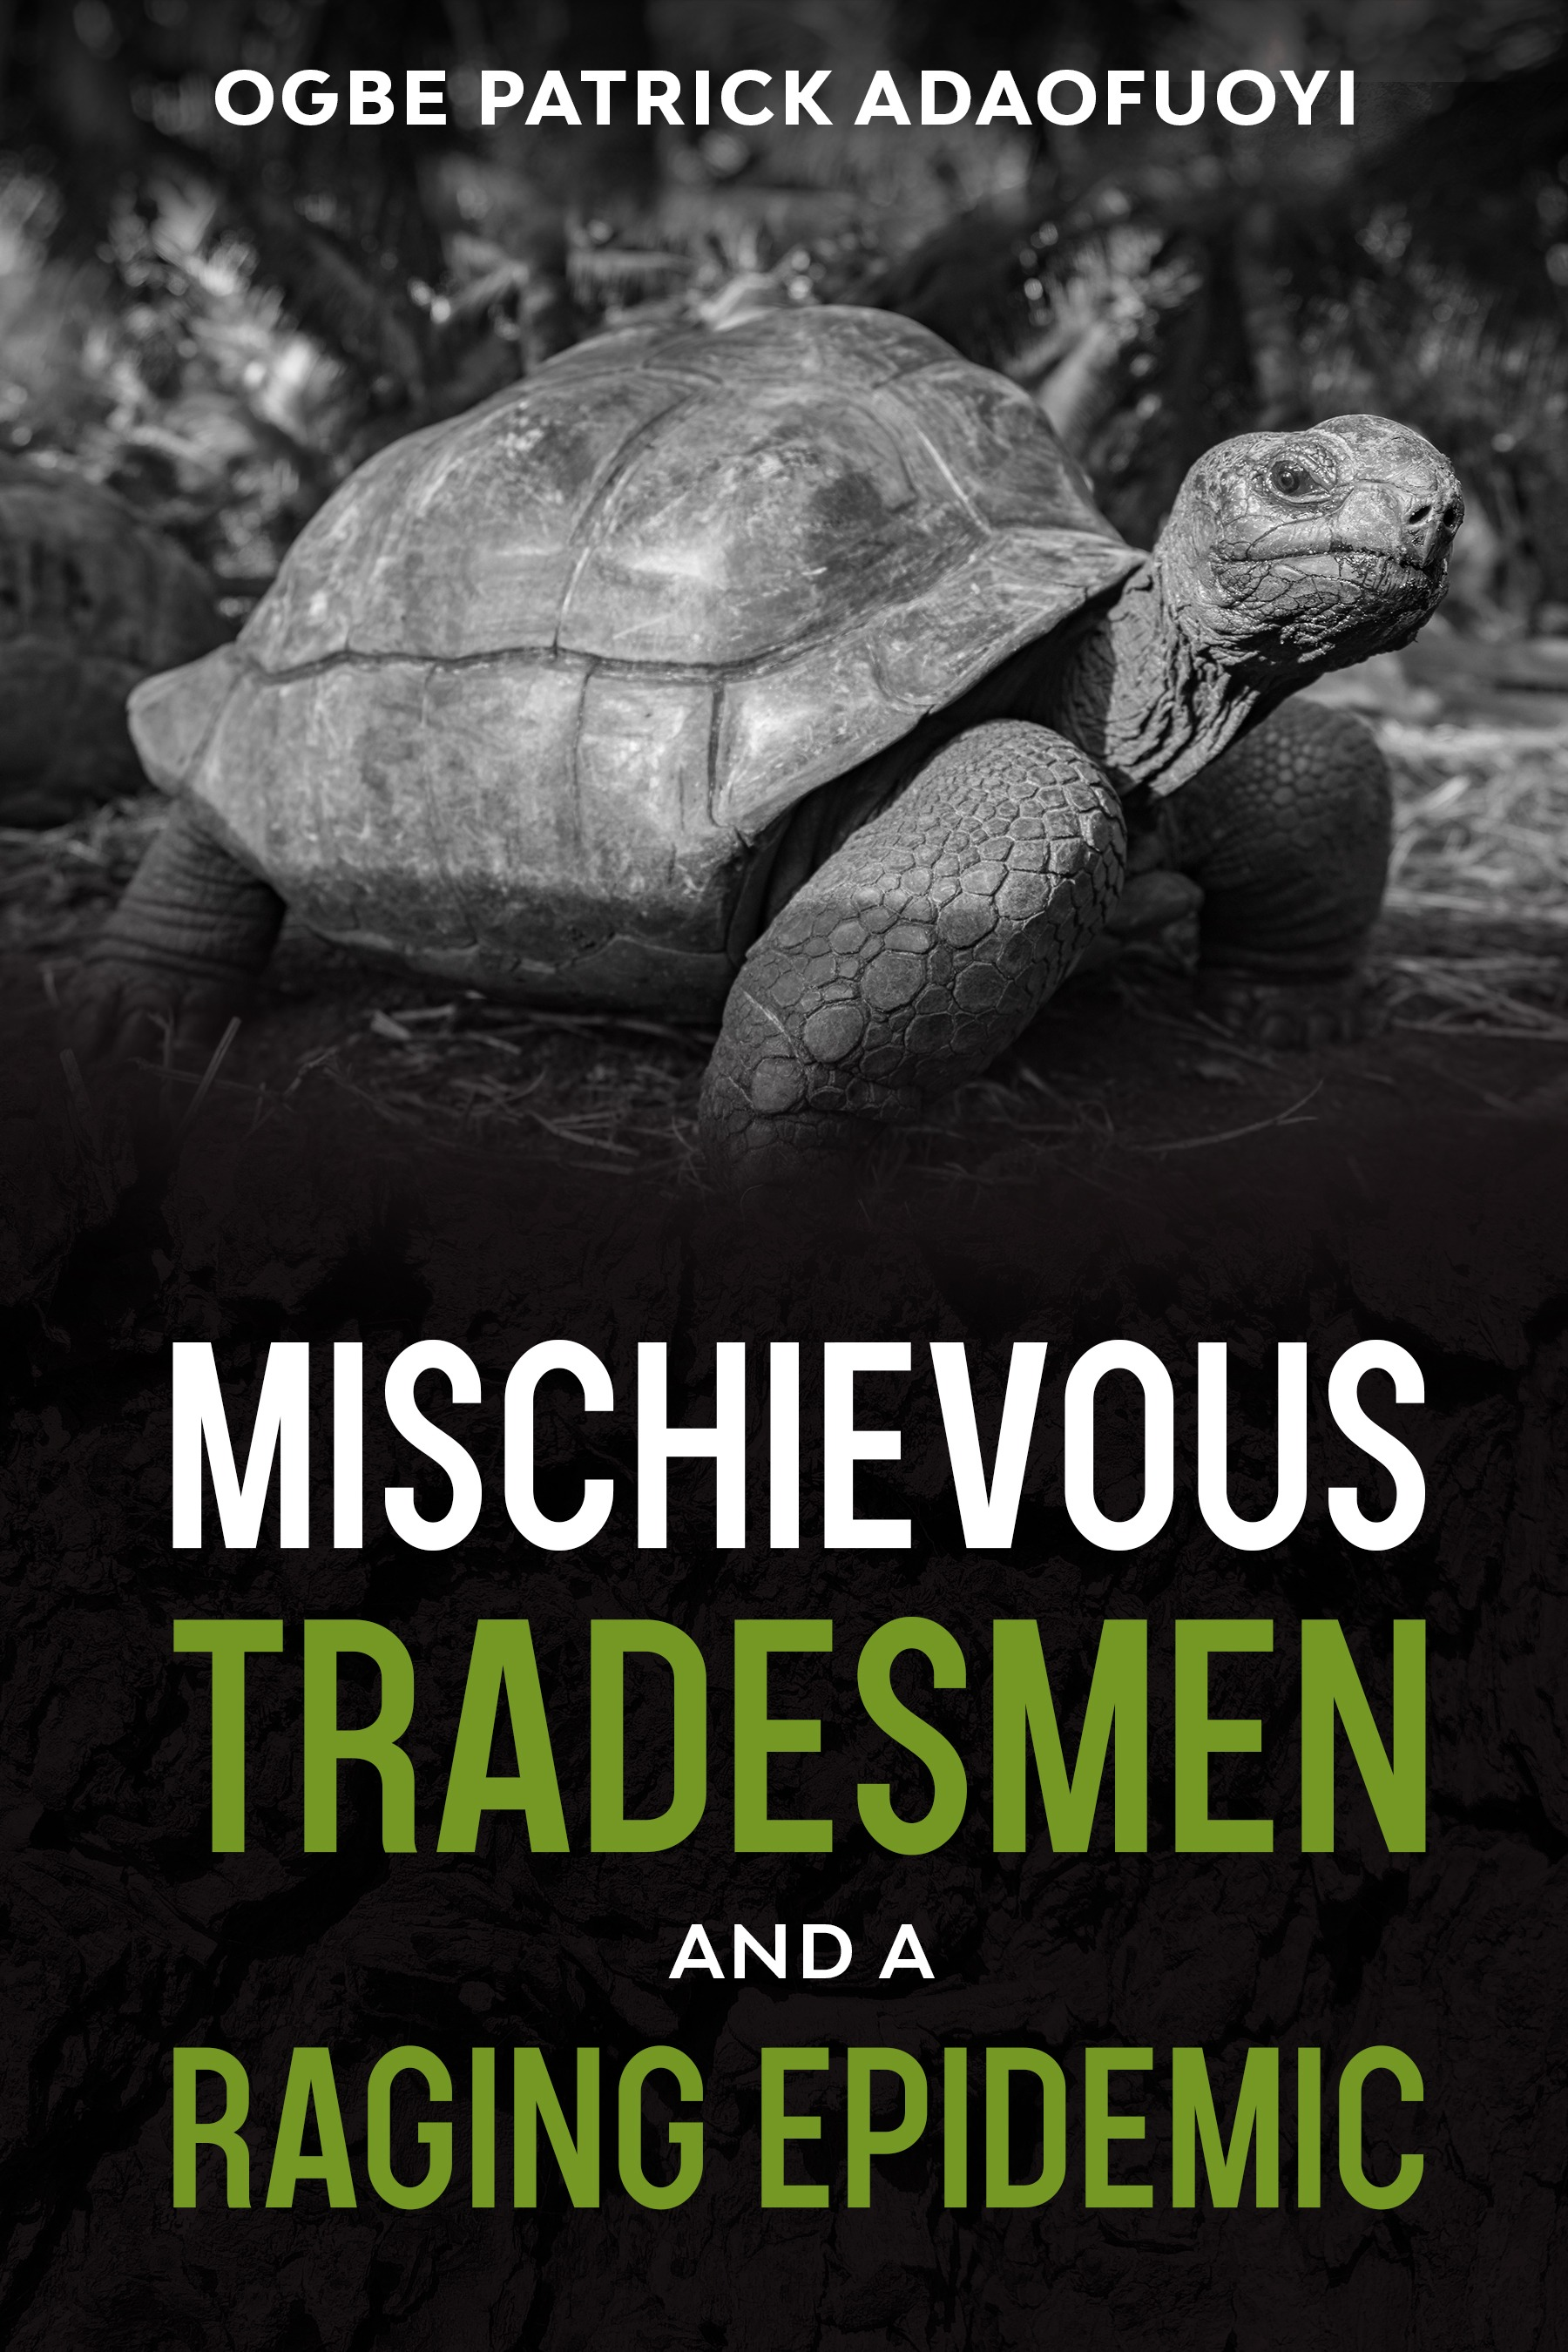 Mischievous Tradesmen and A Raging Epidemic